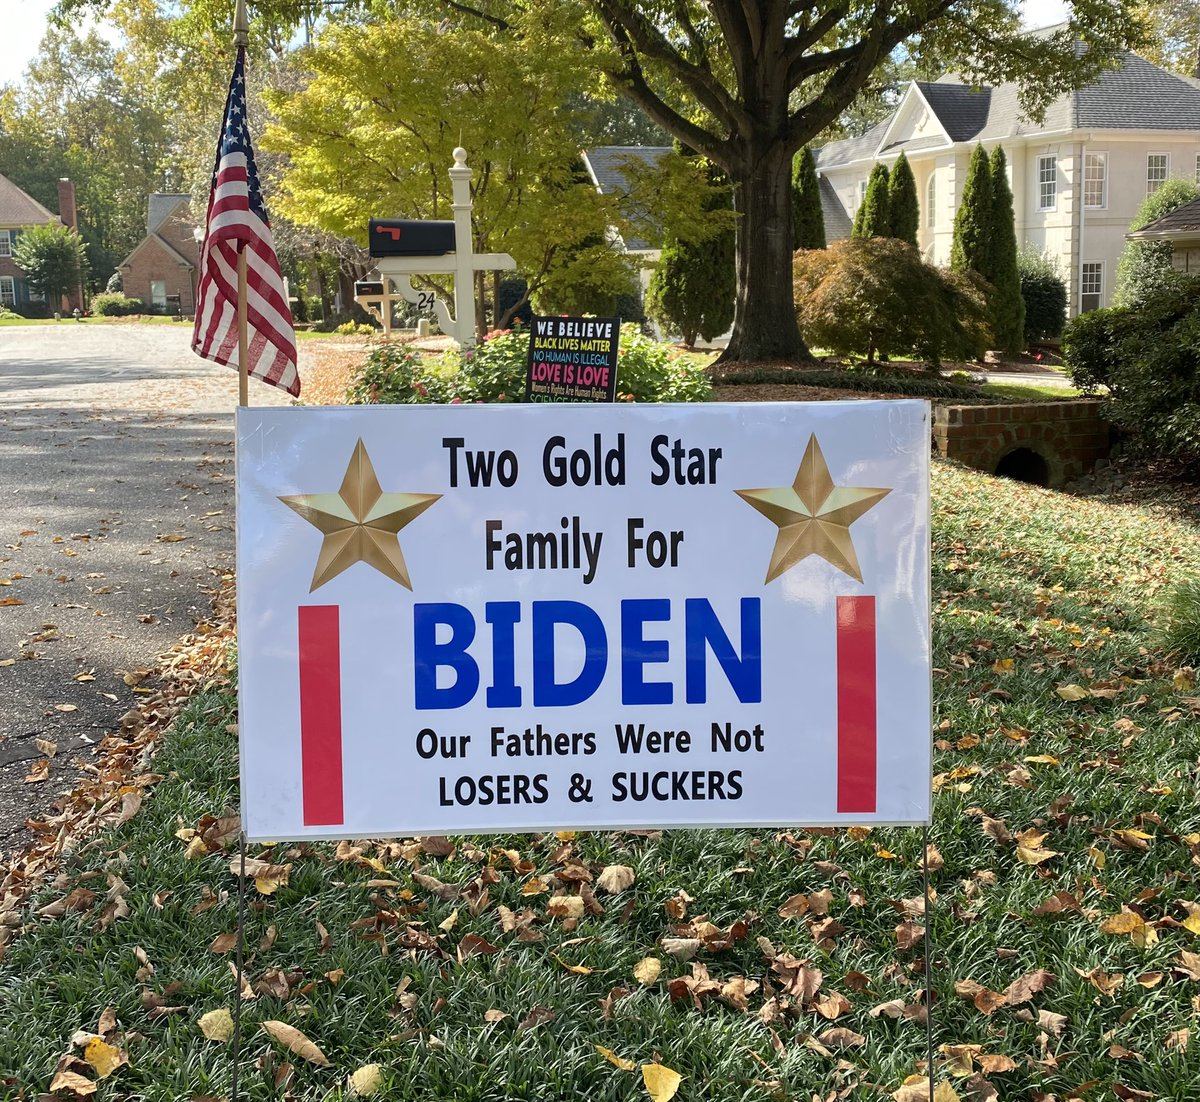 My neighbor made his own sign. 🇺🇸🇺🇸 @votevets